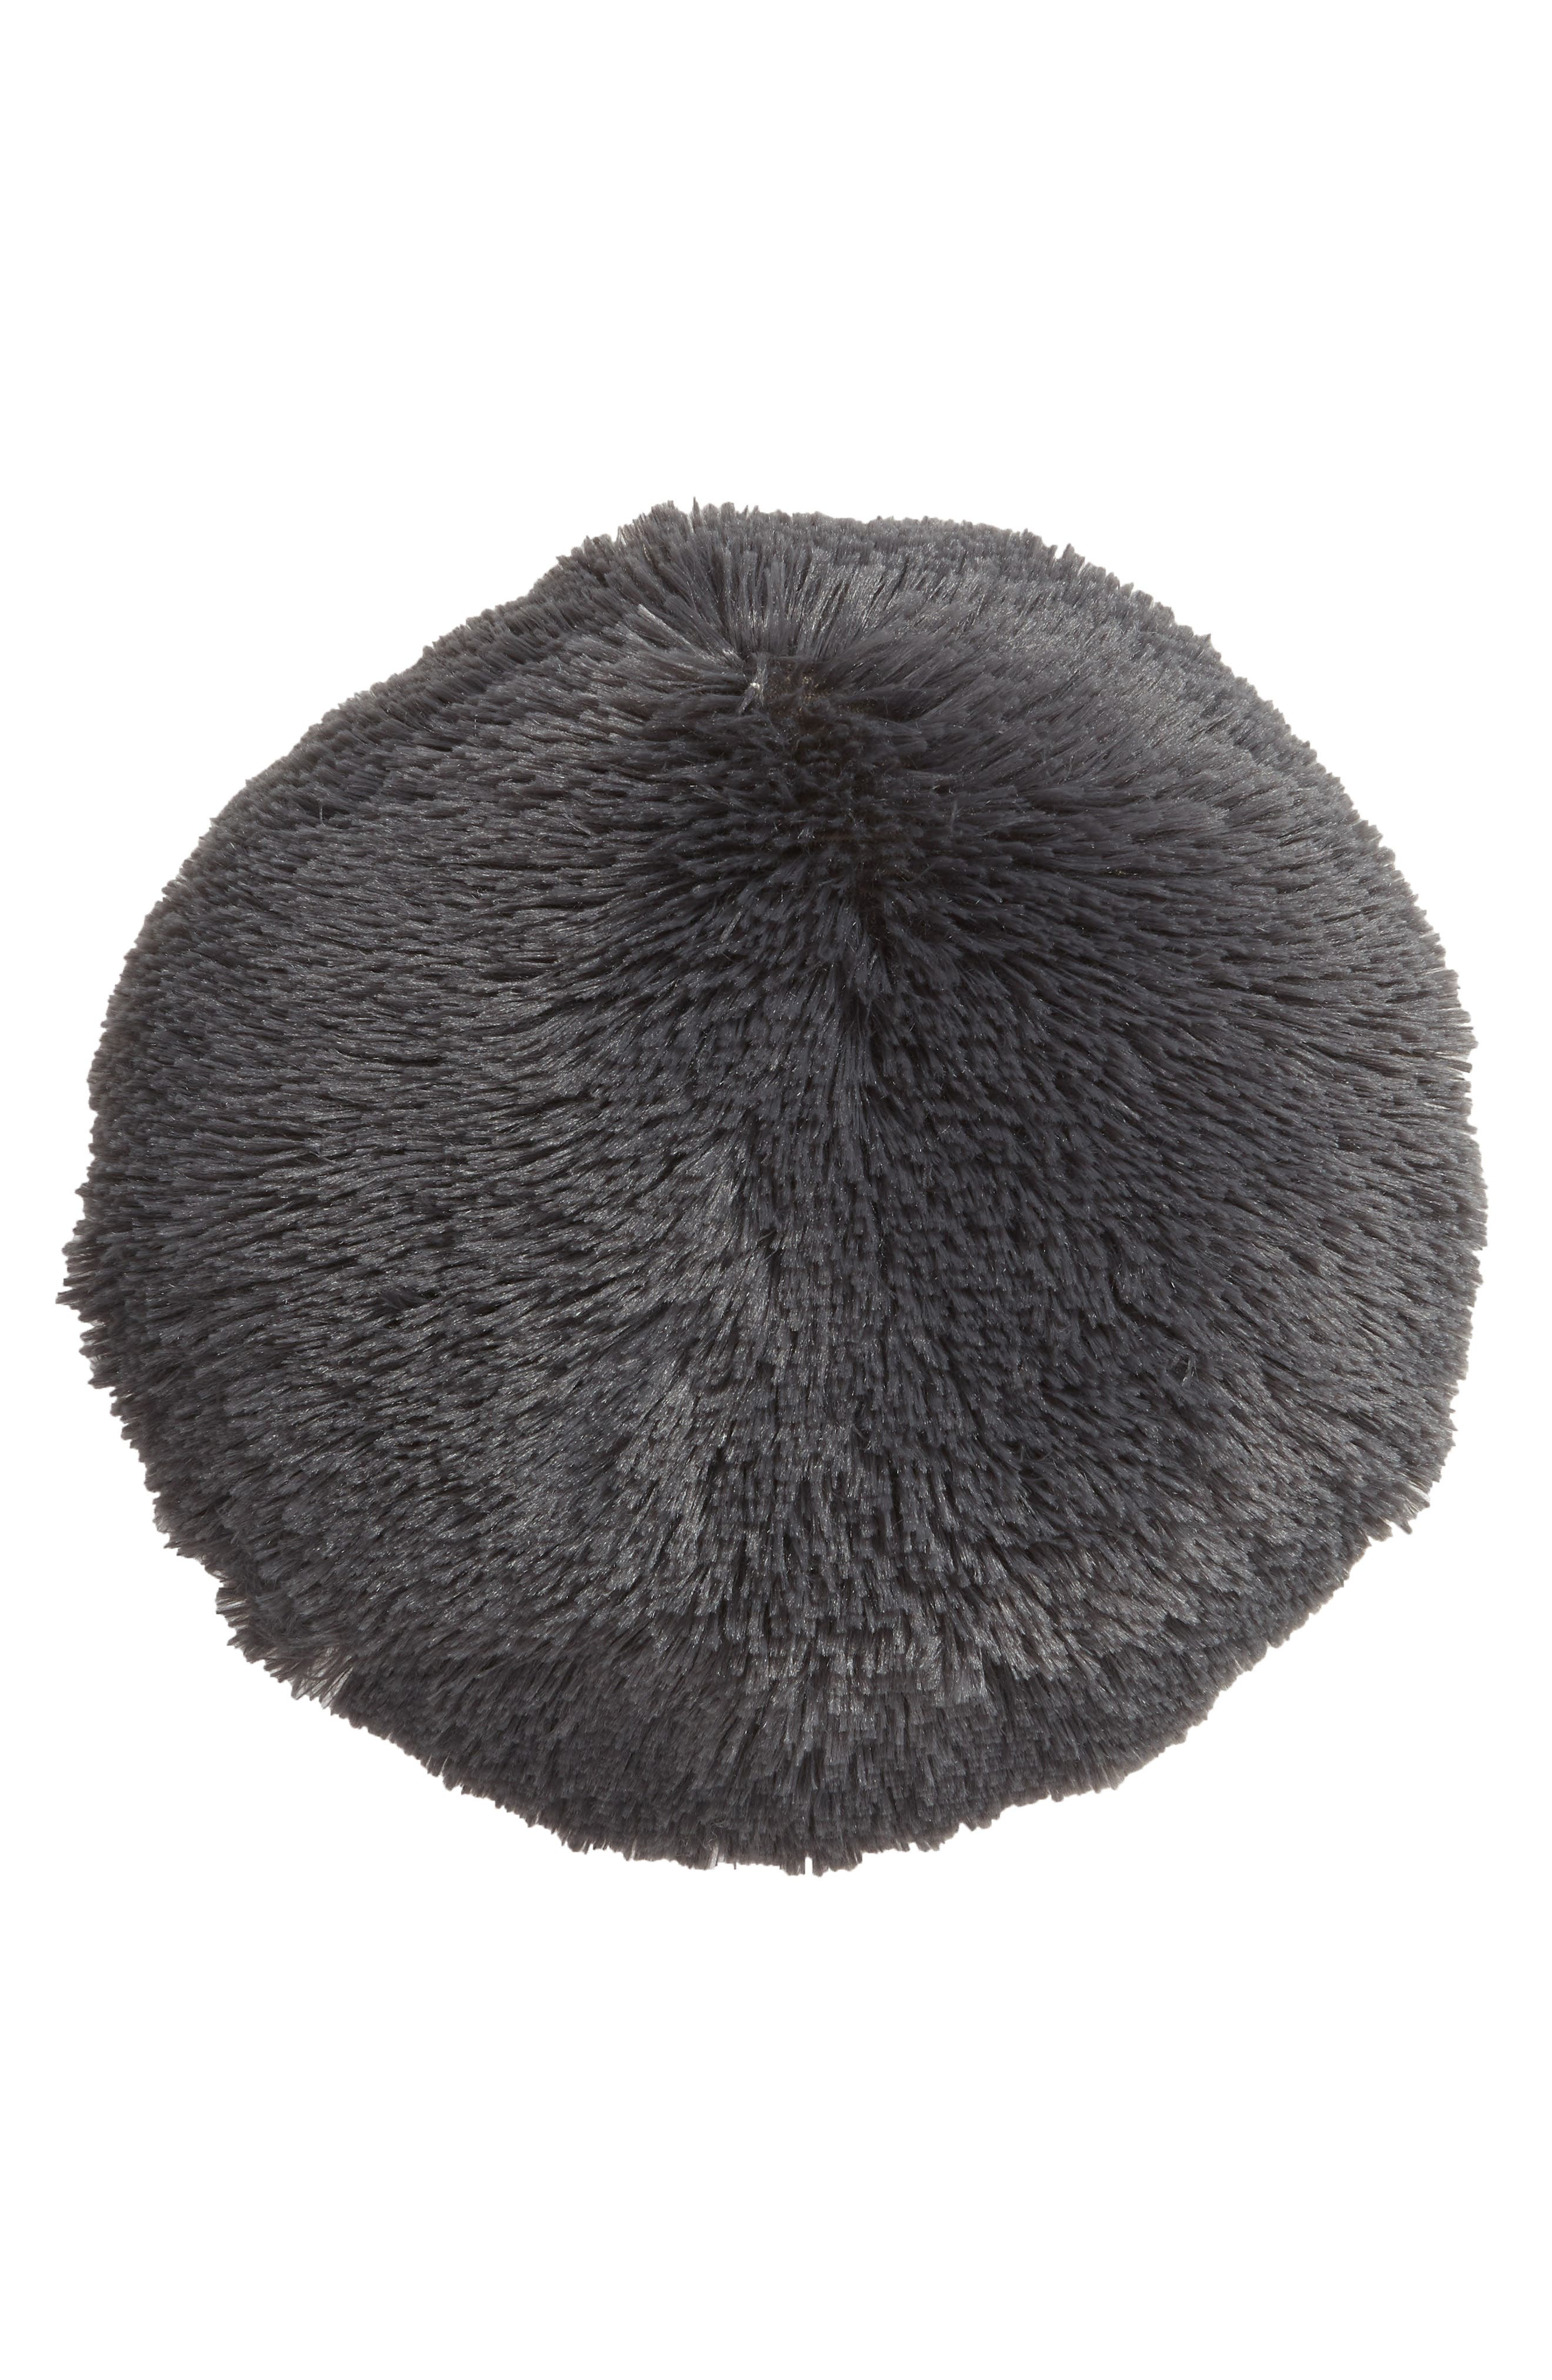 NORDSTROM AT HOME, Feather Faux Fur Pillow, Main thumbnail 1, color, 022